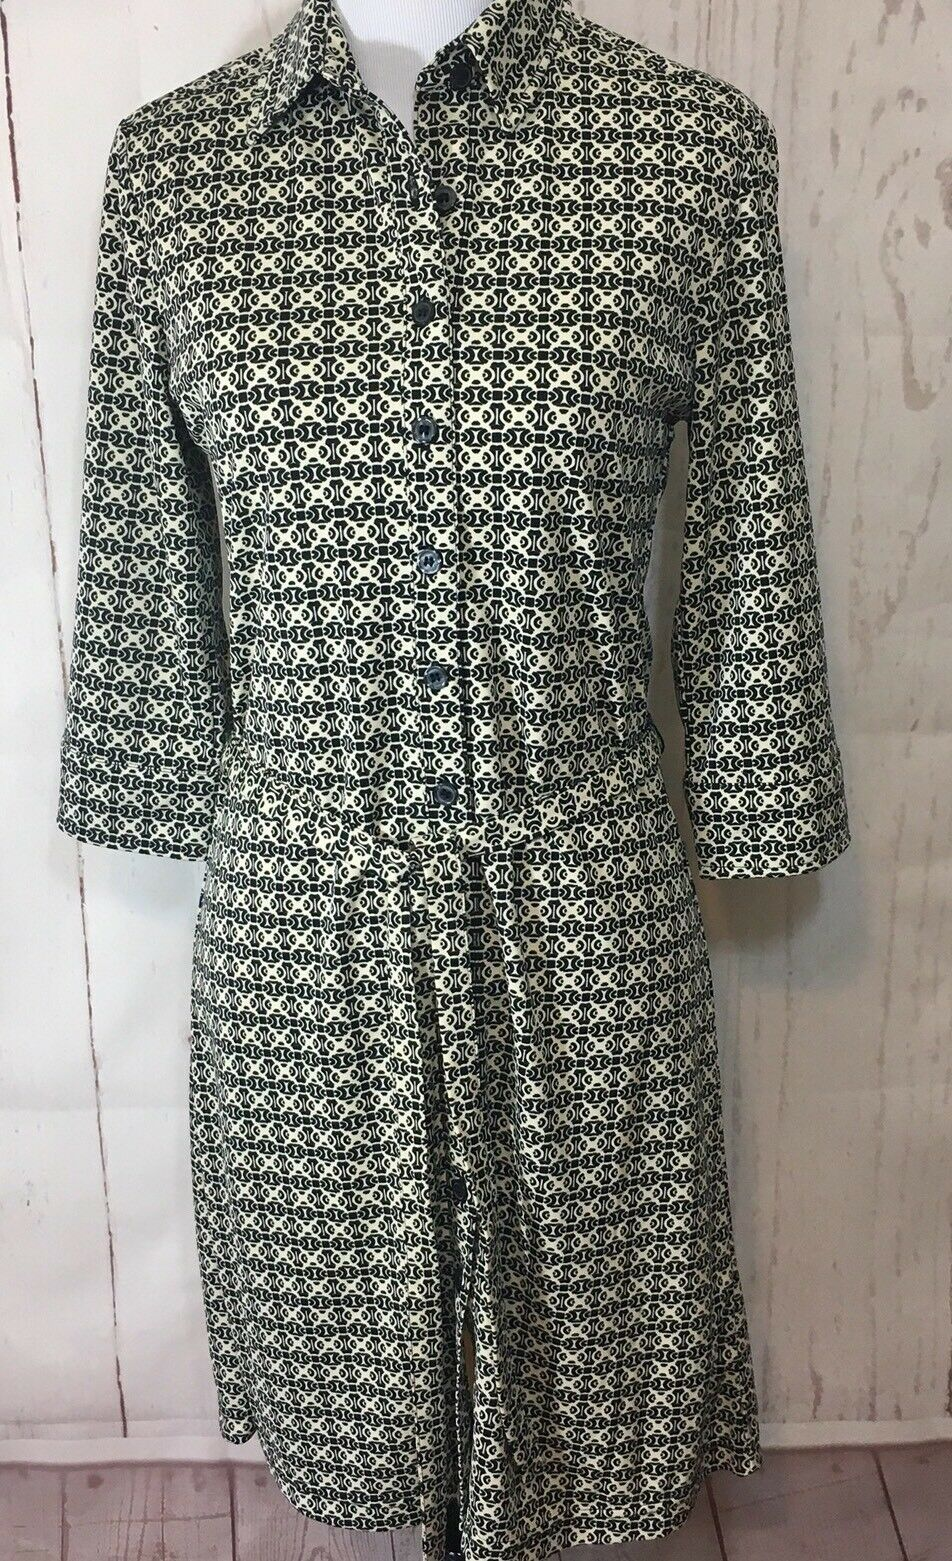 Express Dress Button Down Sz 5/6 3/4 Collared Belted 3/4 Sleeve Career image 9